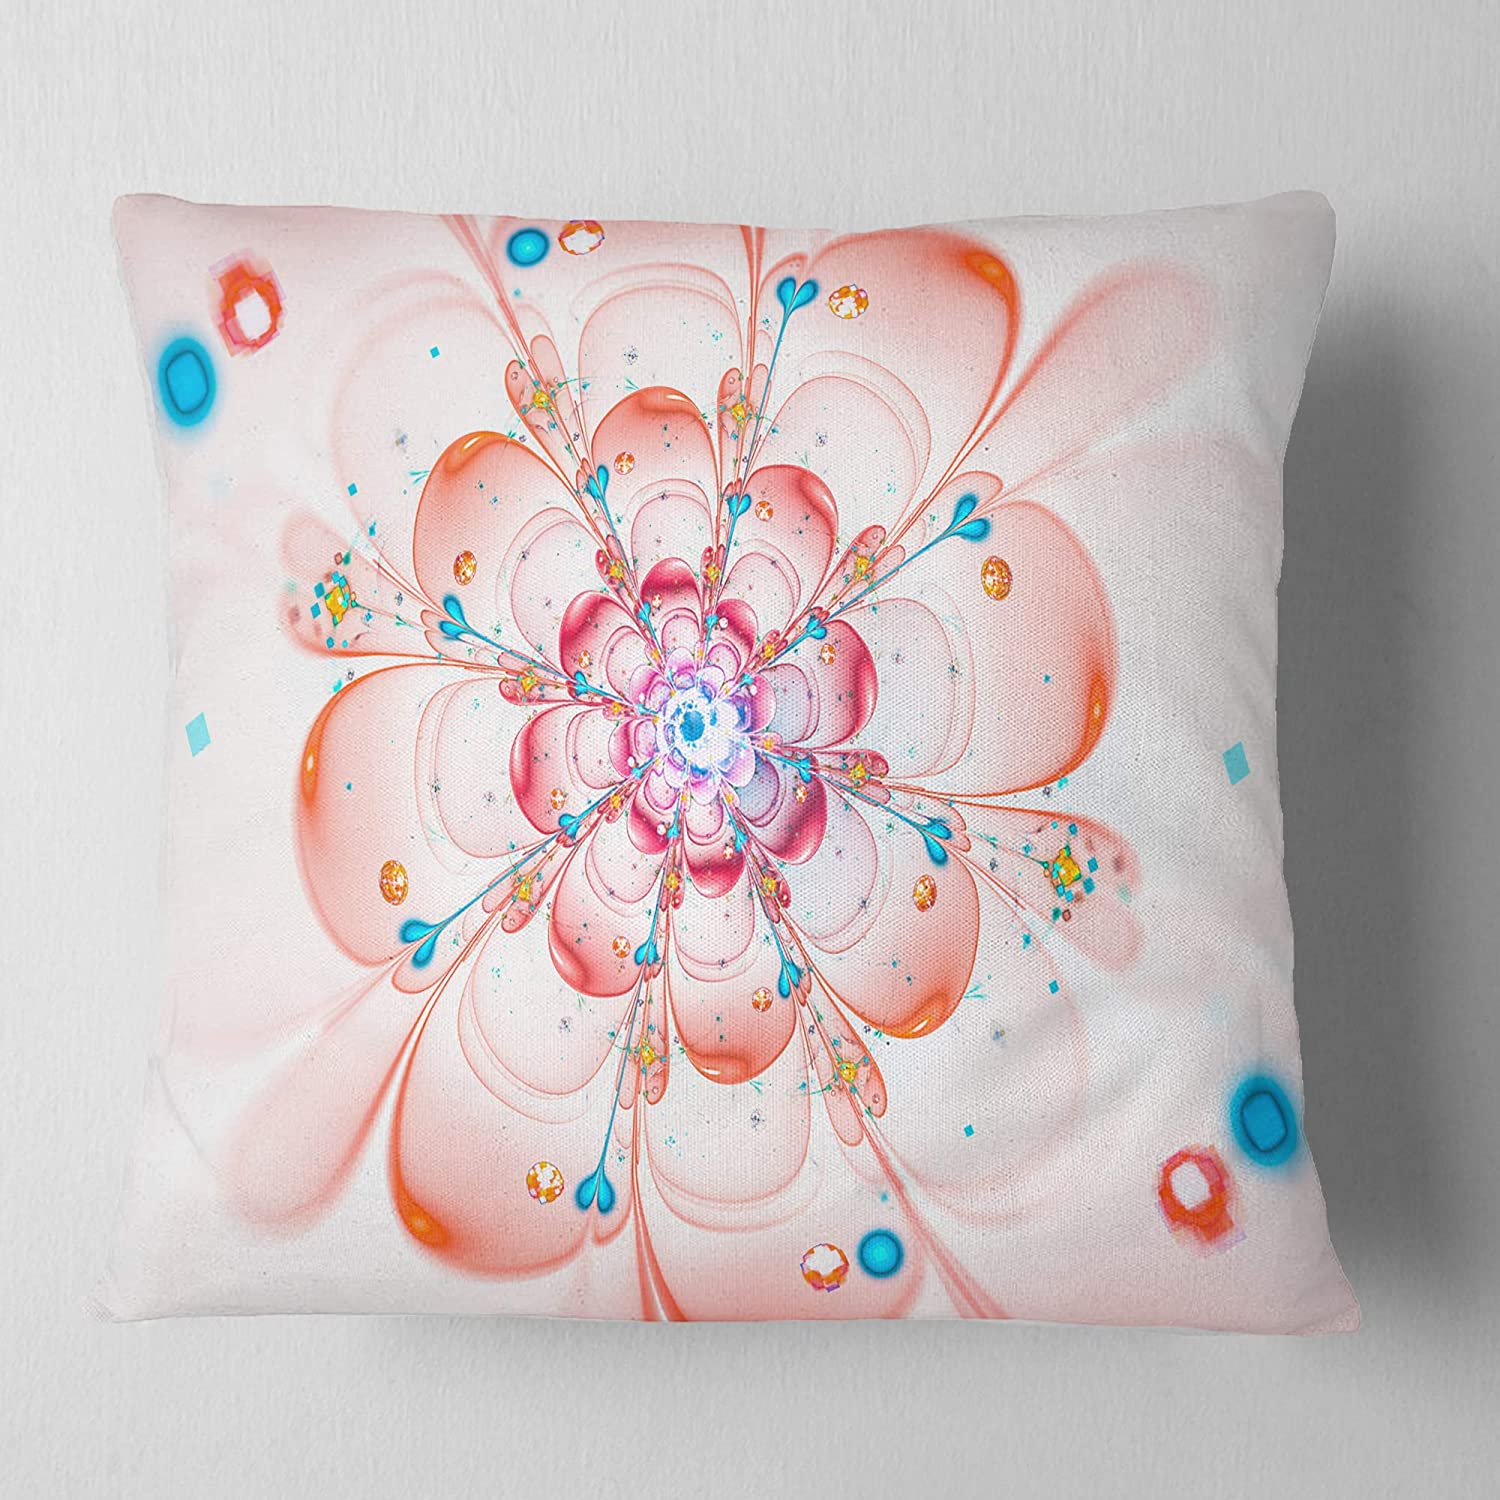 x 16 in Sofa Throw Pillow 16 in Insert Printed On Both Side Designart CU12154-16-16 Pink Fractal Flower Petals Close up Floral Cushion Cover for Living Room in